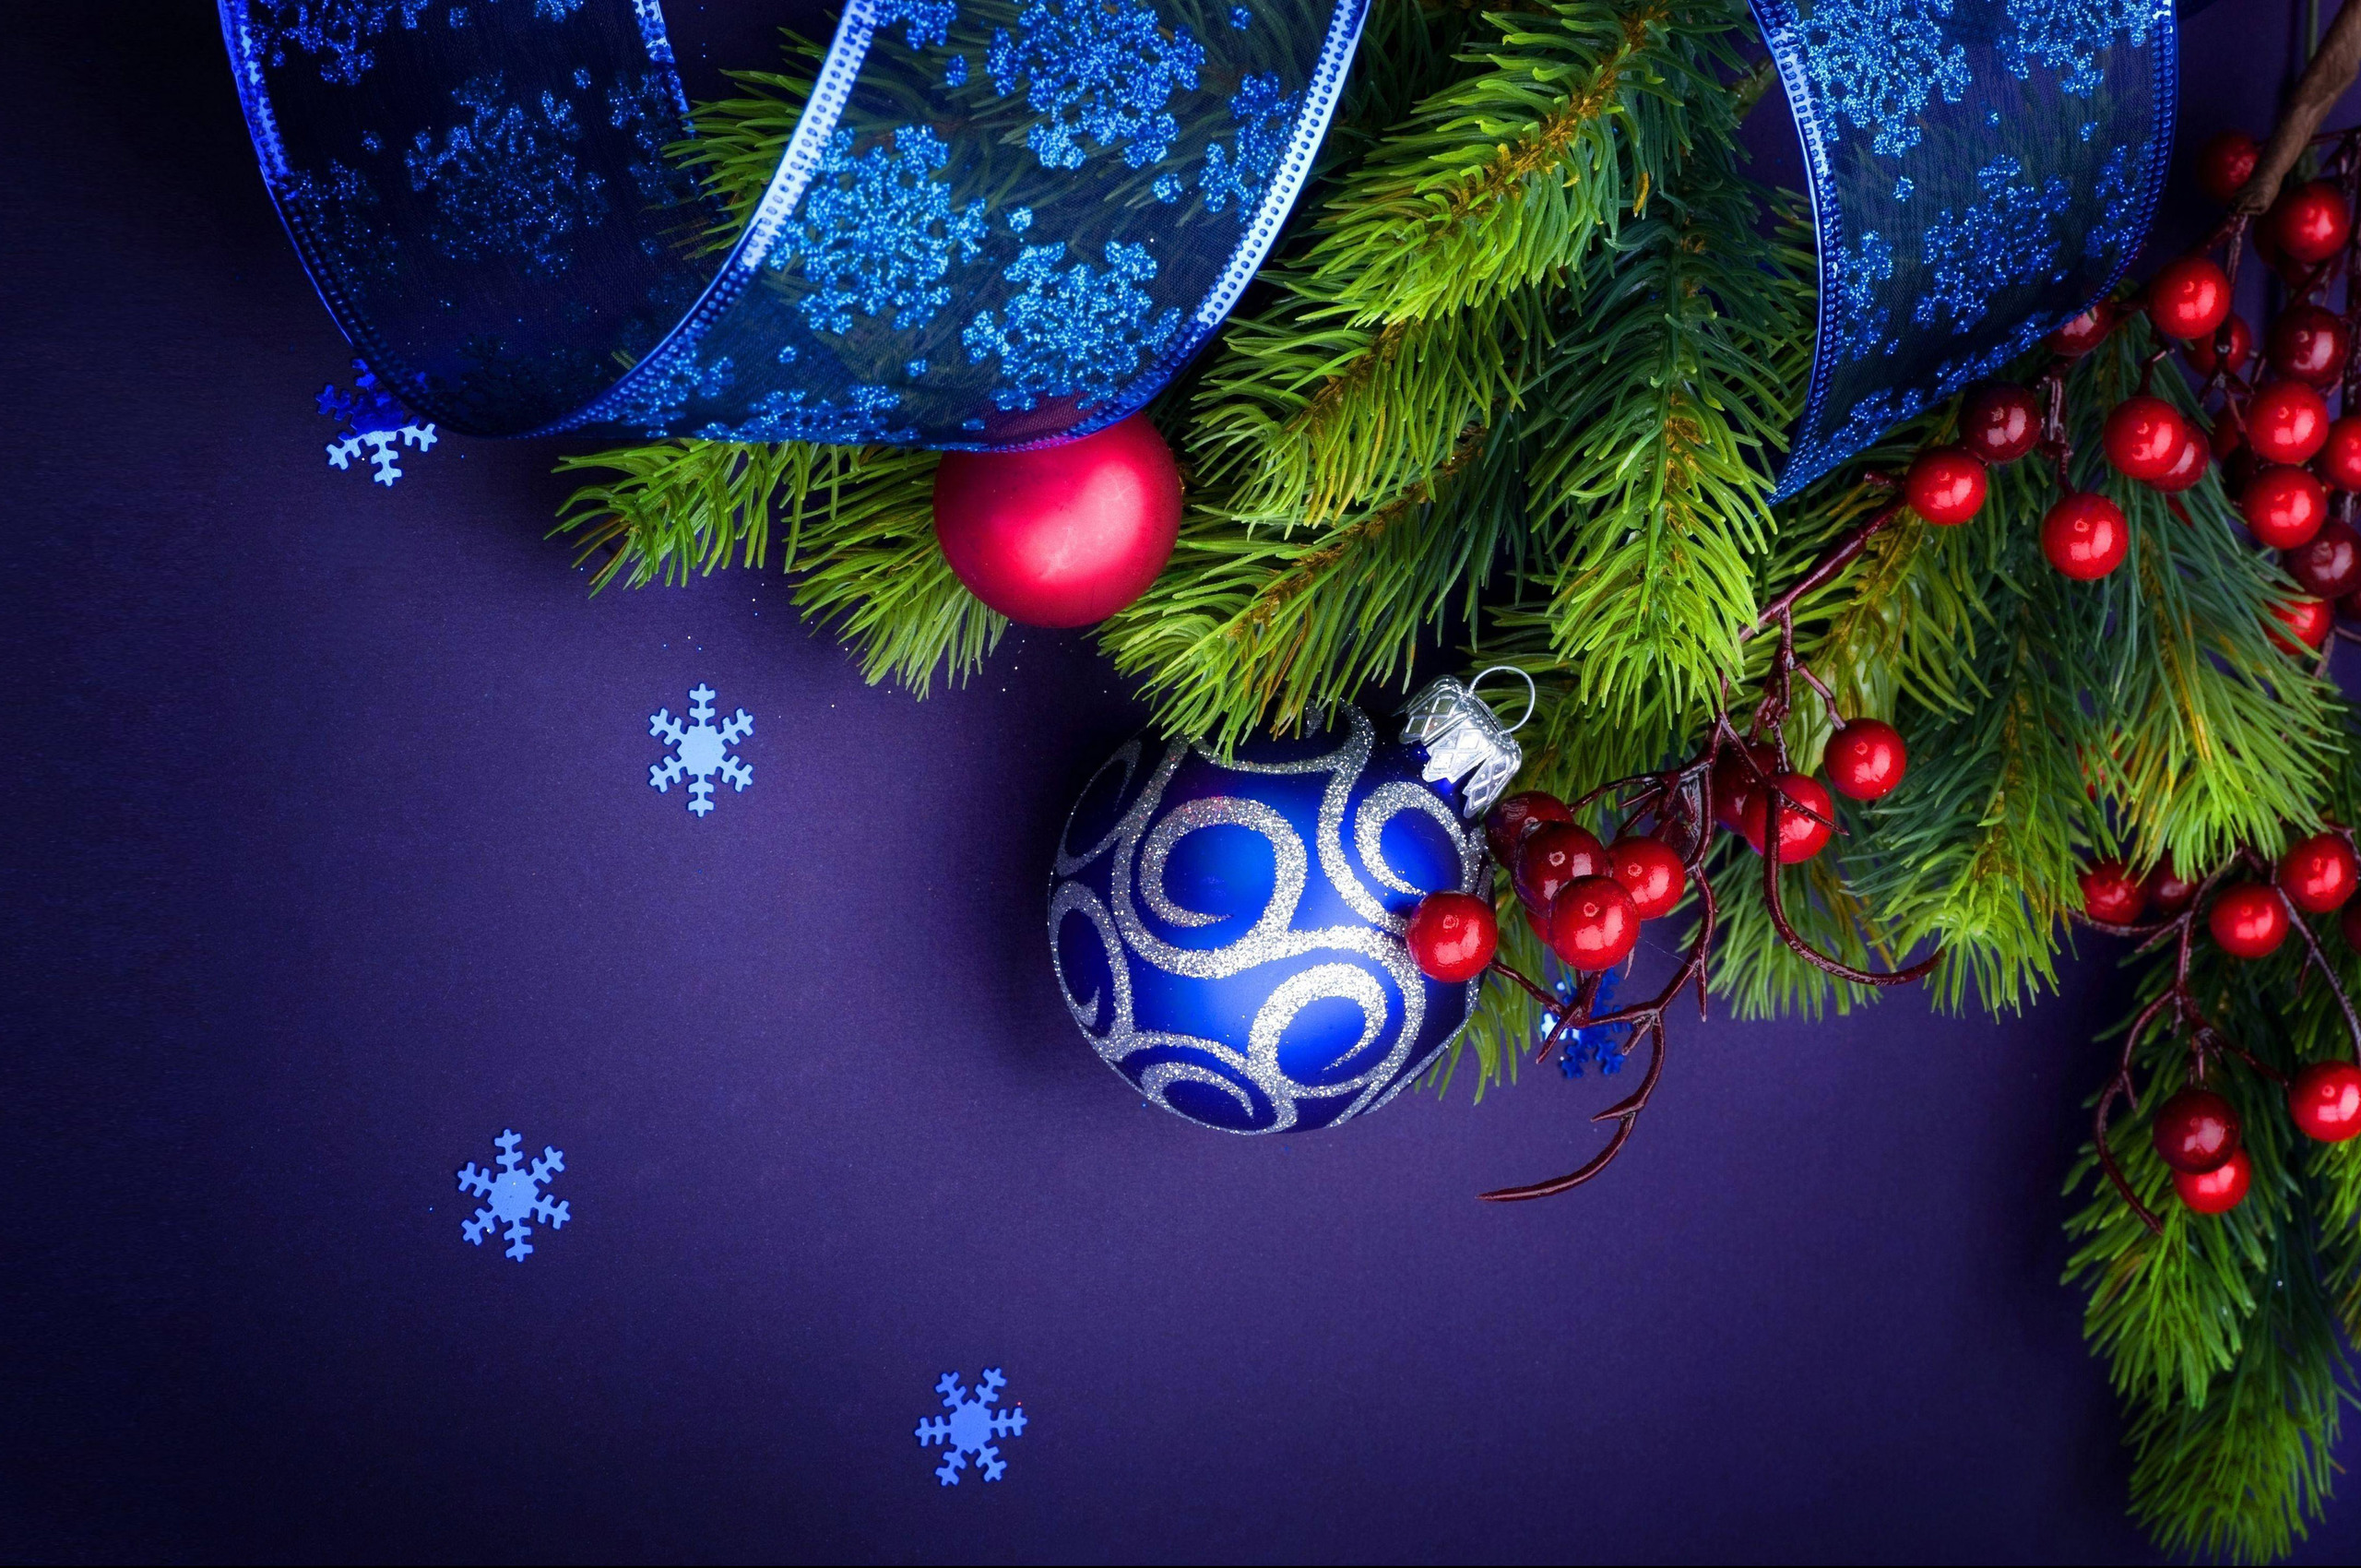 christmas-ornaments-4k-ap.jpg